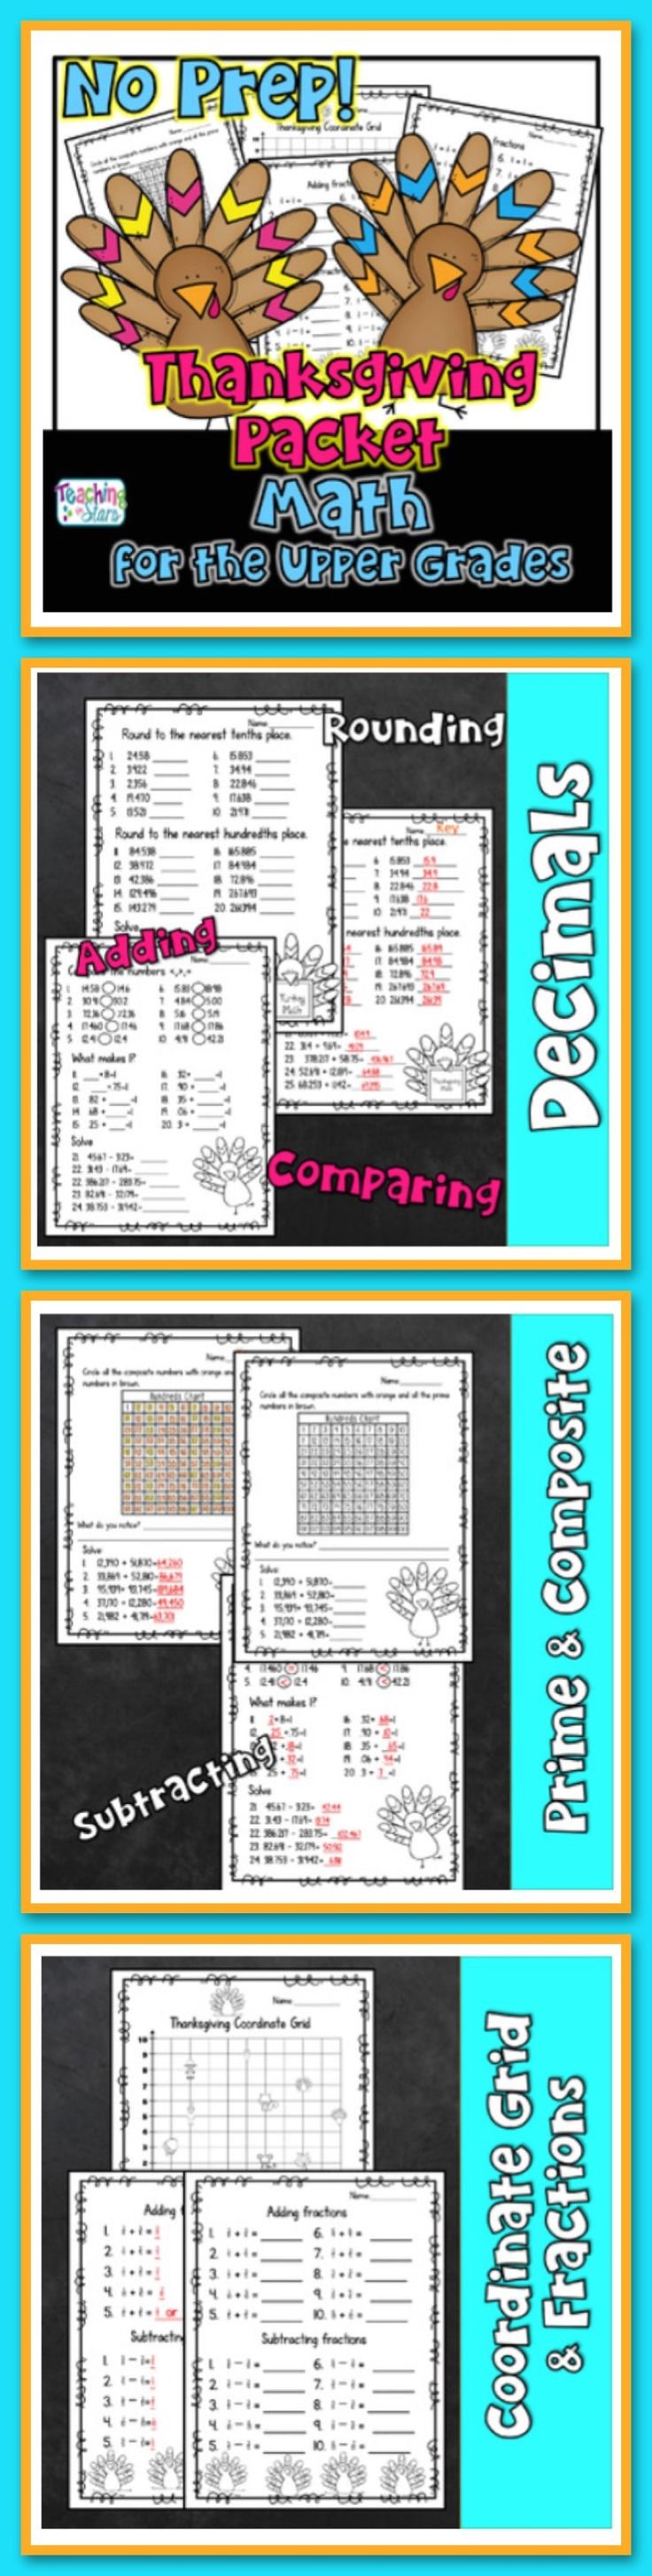 Thanksgiving Math Worksheets are a great way for students to reinforce their math skills and review previous learned concepts. Students will work on place value, decimals, fractions, coordinate grids, and basic operations. These worksheets can also help prepare students for standardized testing.